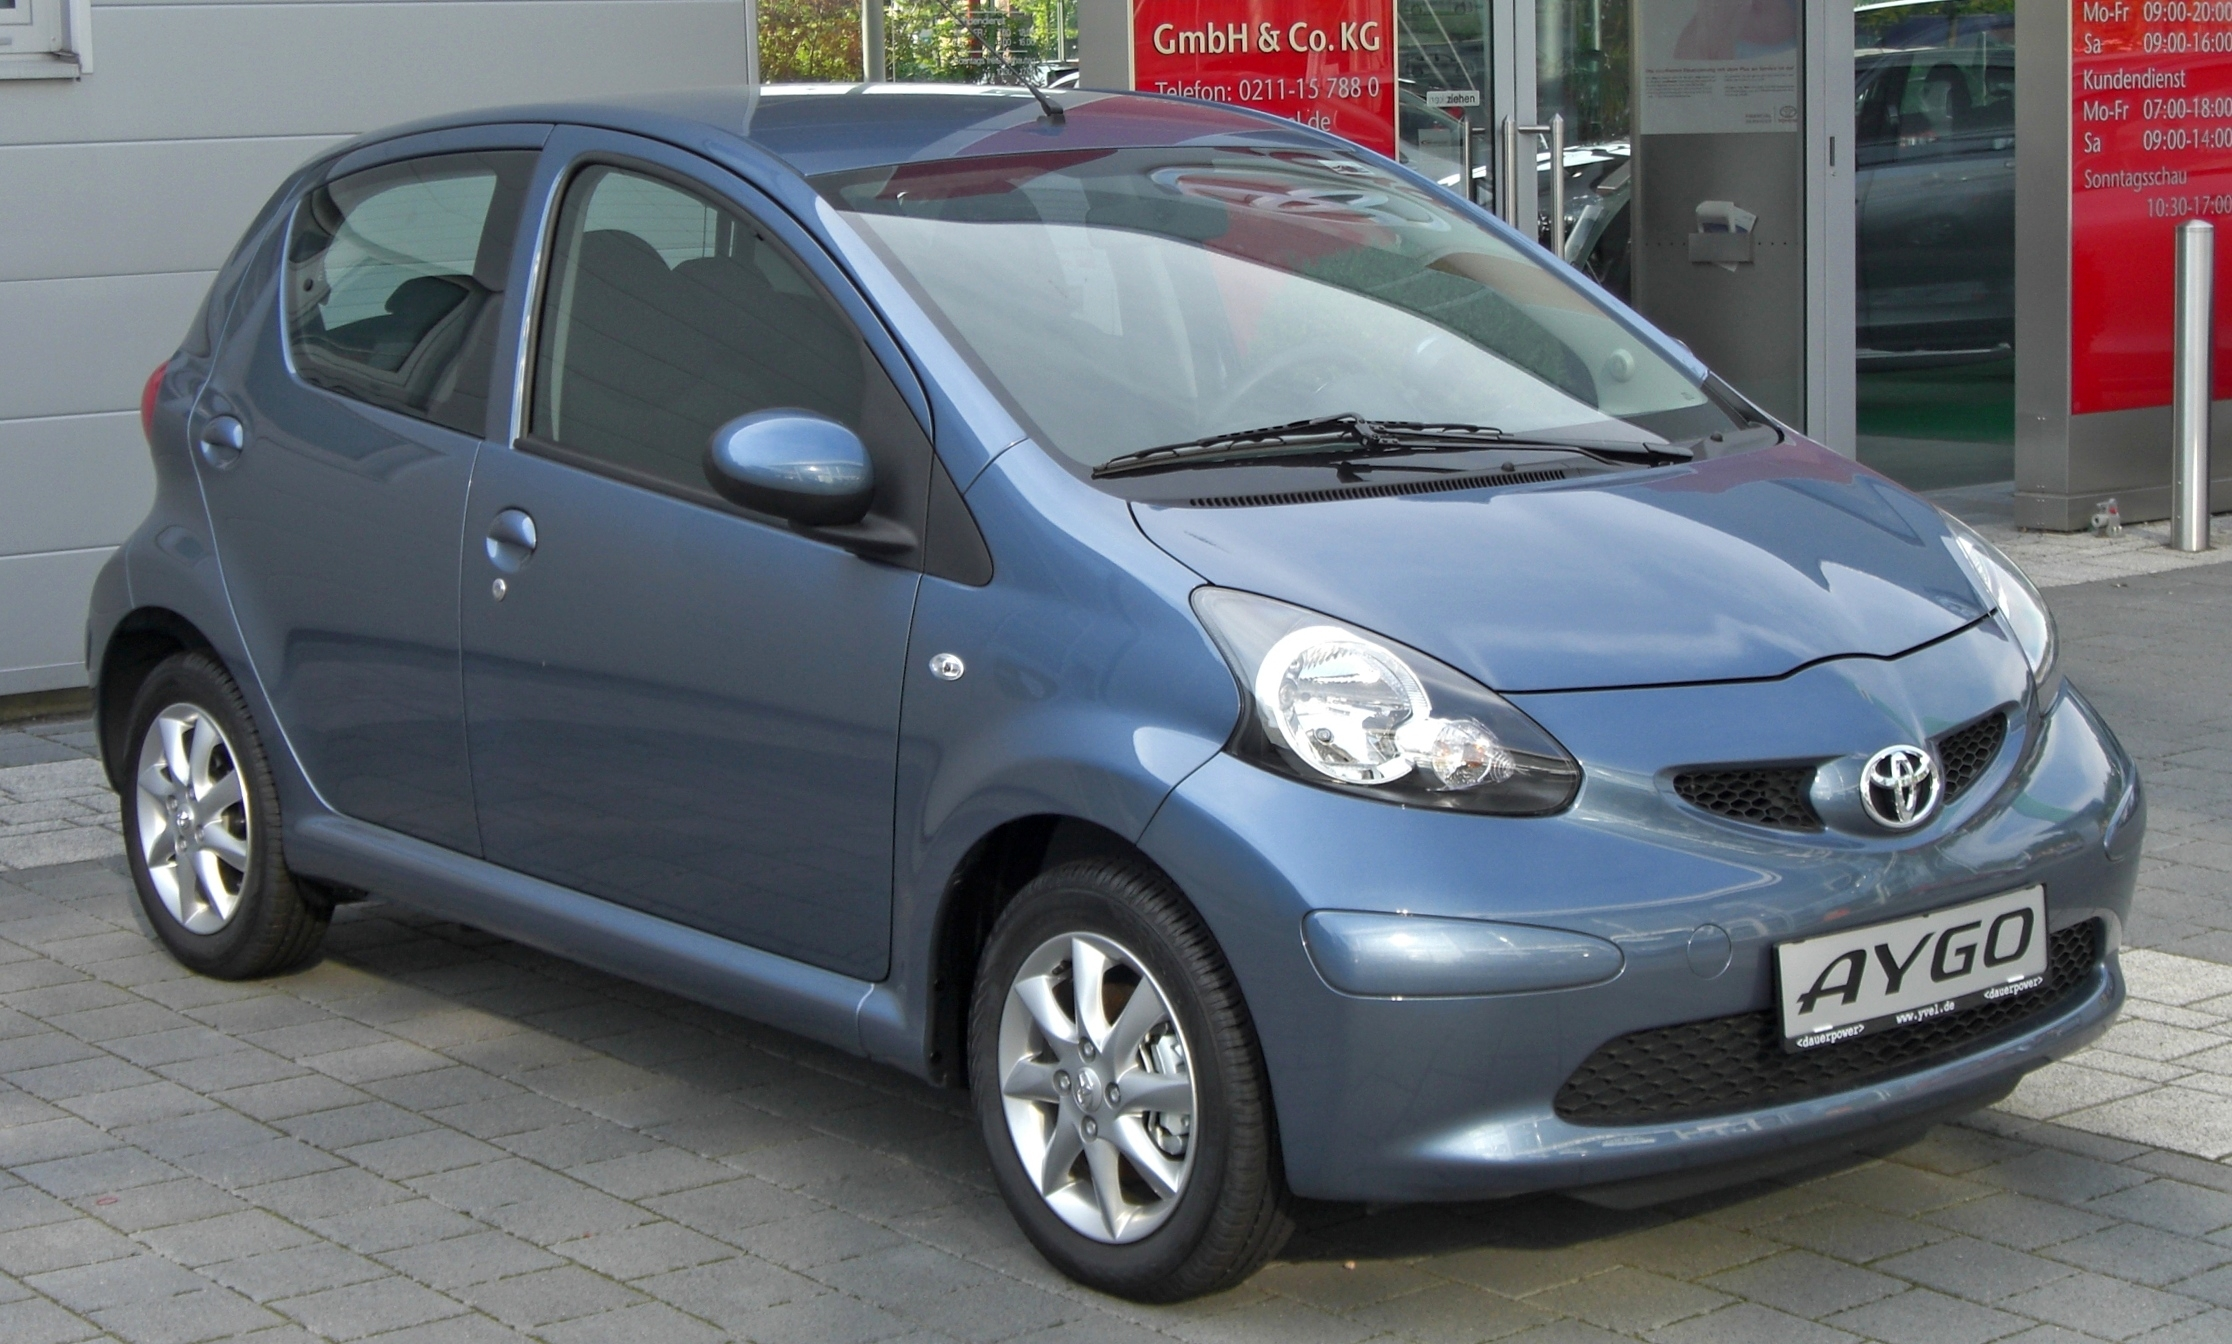 2008 toyota aygo pictures information and specs auto. Black Bedroom Furniture Sets. Home Design Ideas